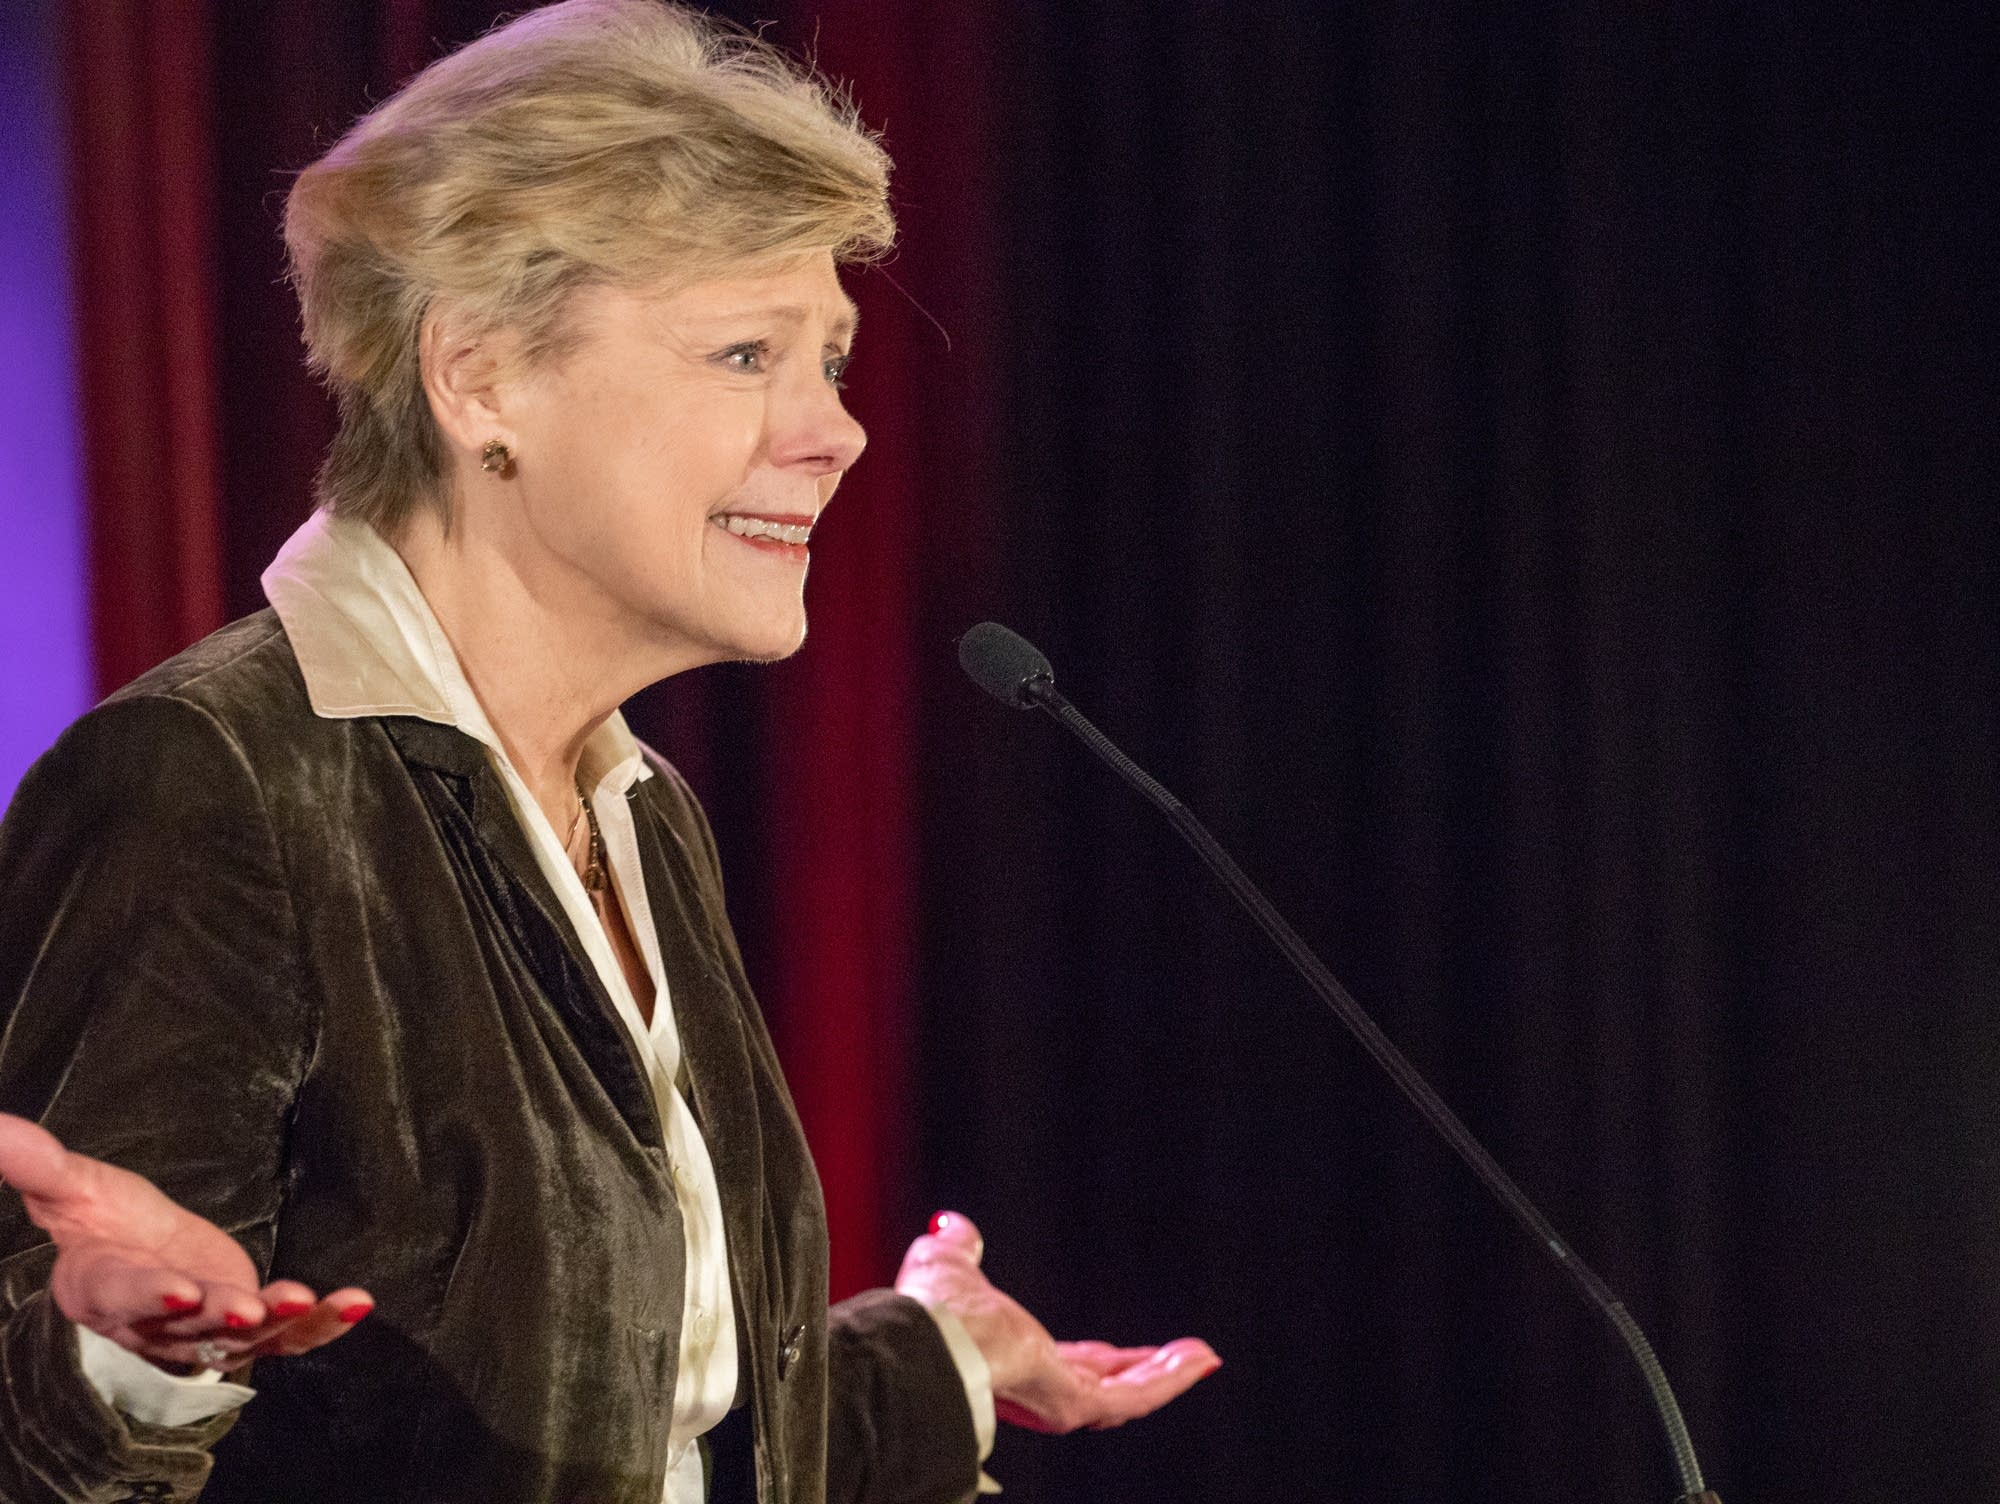 Cokie Roberts, journalist and political commentator for ABC News and NPR